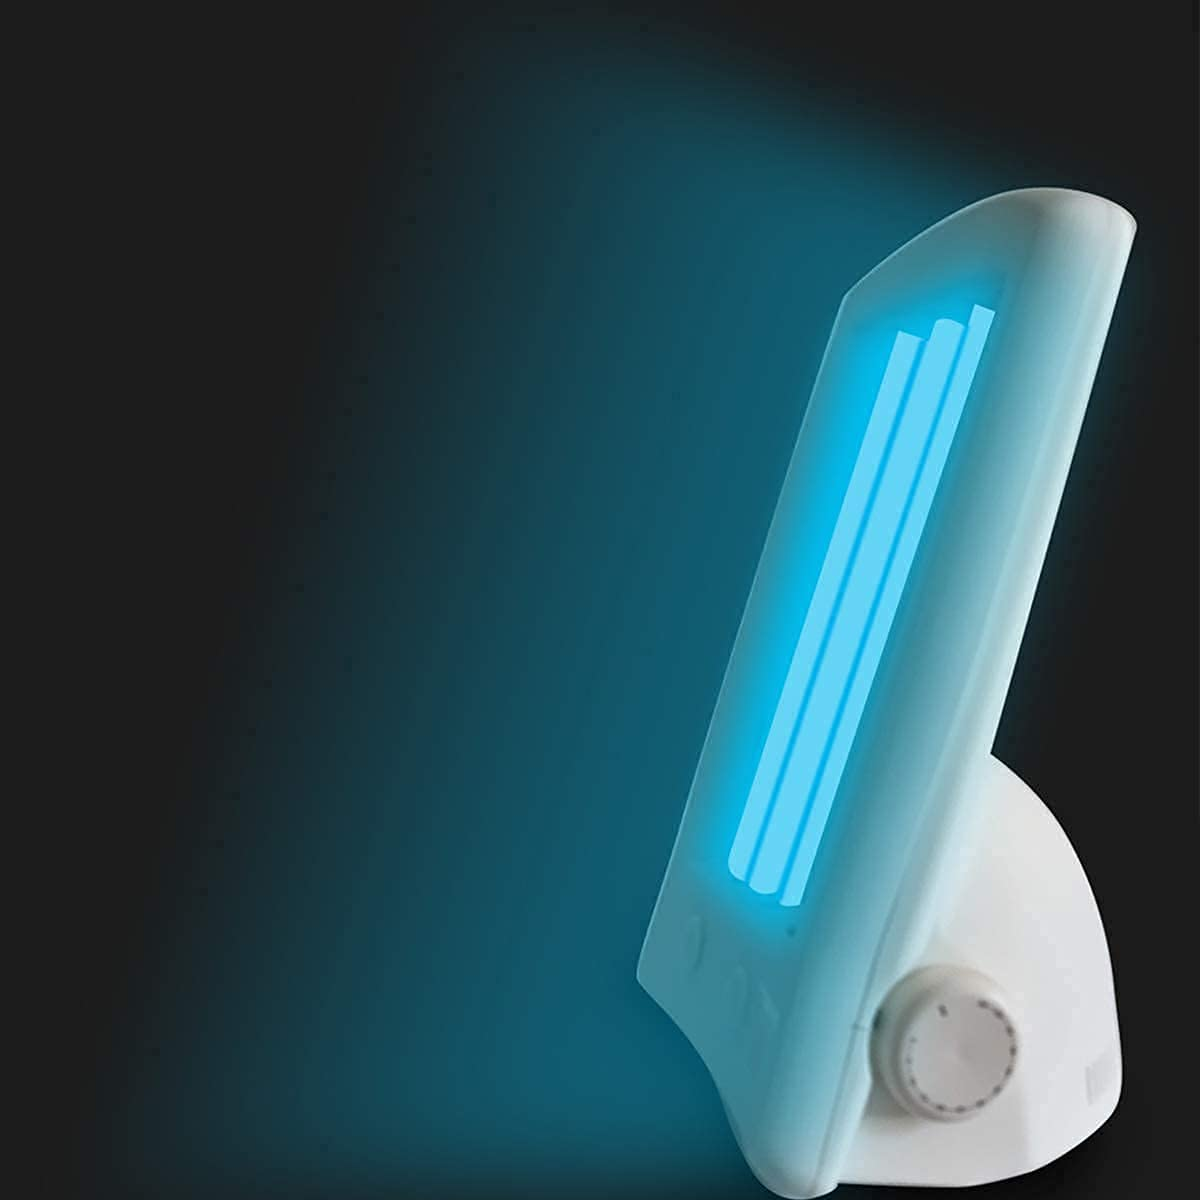 Home Sun Natural Tanning Lamp Face and Body Light Therapy Simulated Sunlight Portable